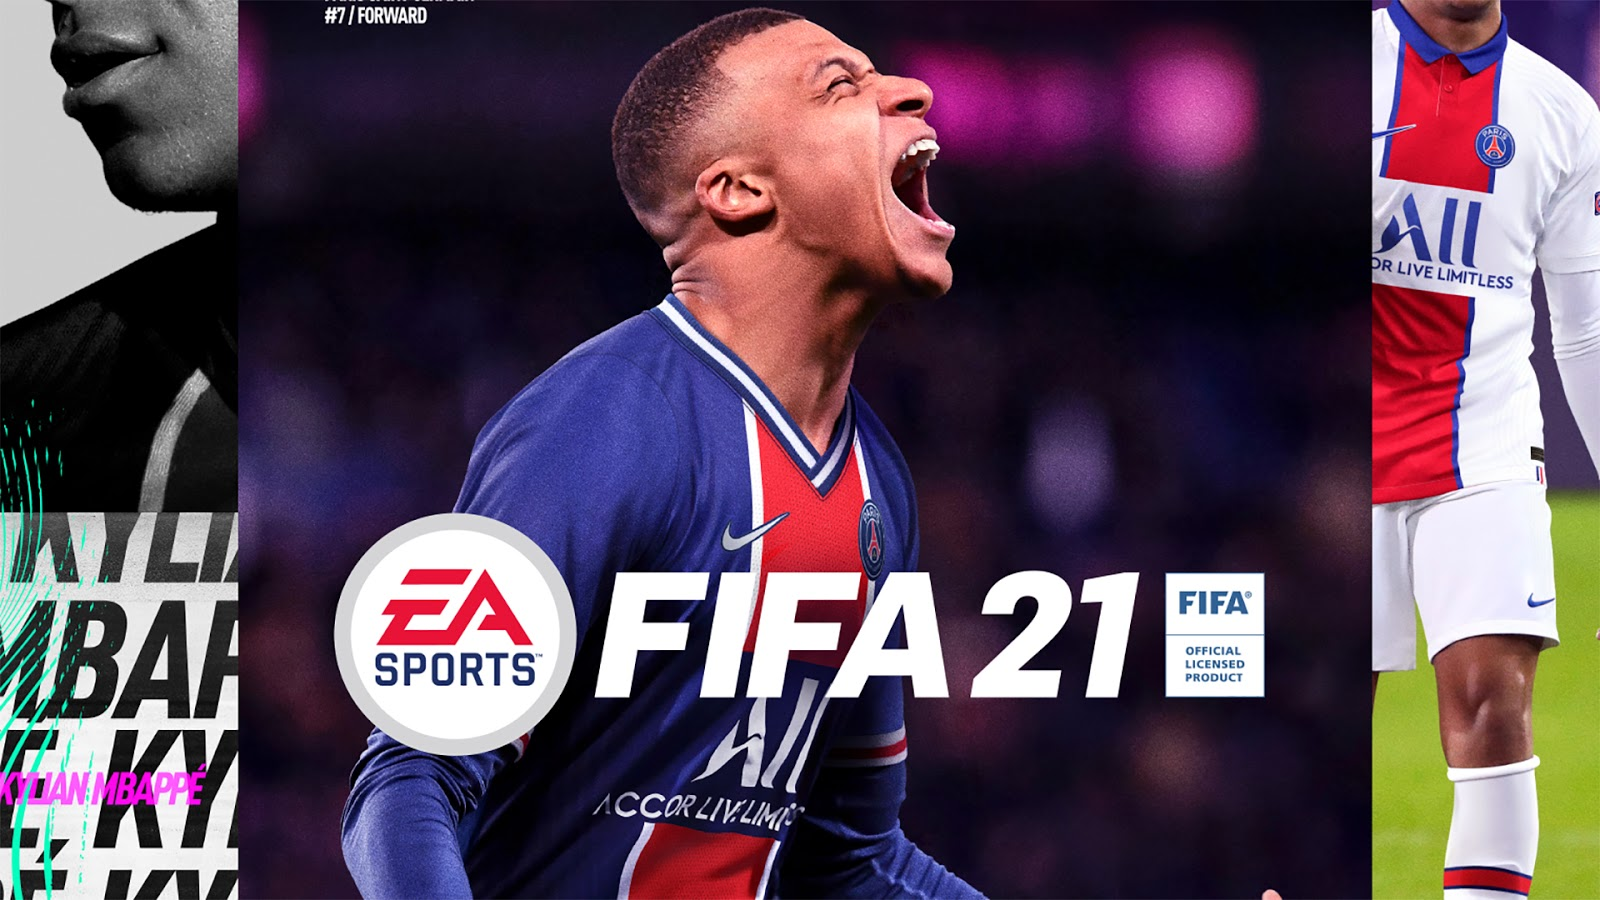 Check out our full FIFA 21 review